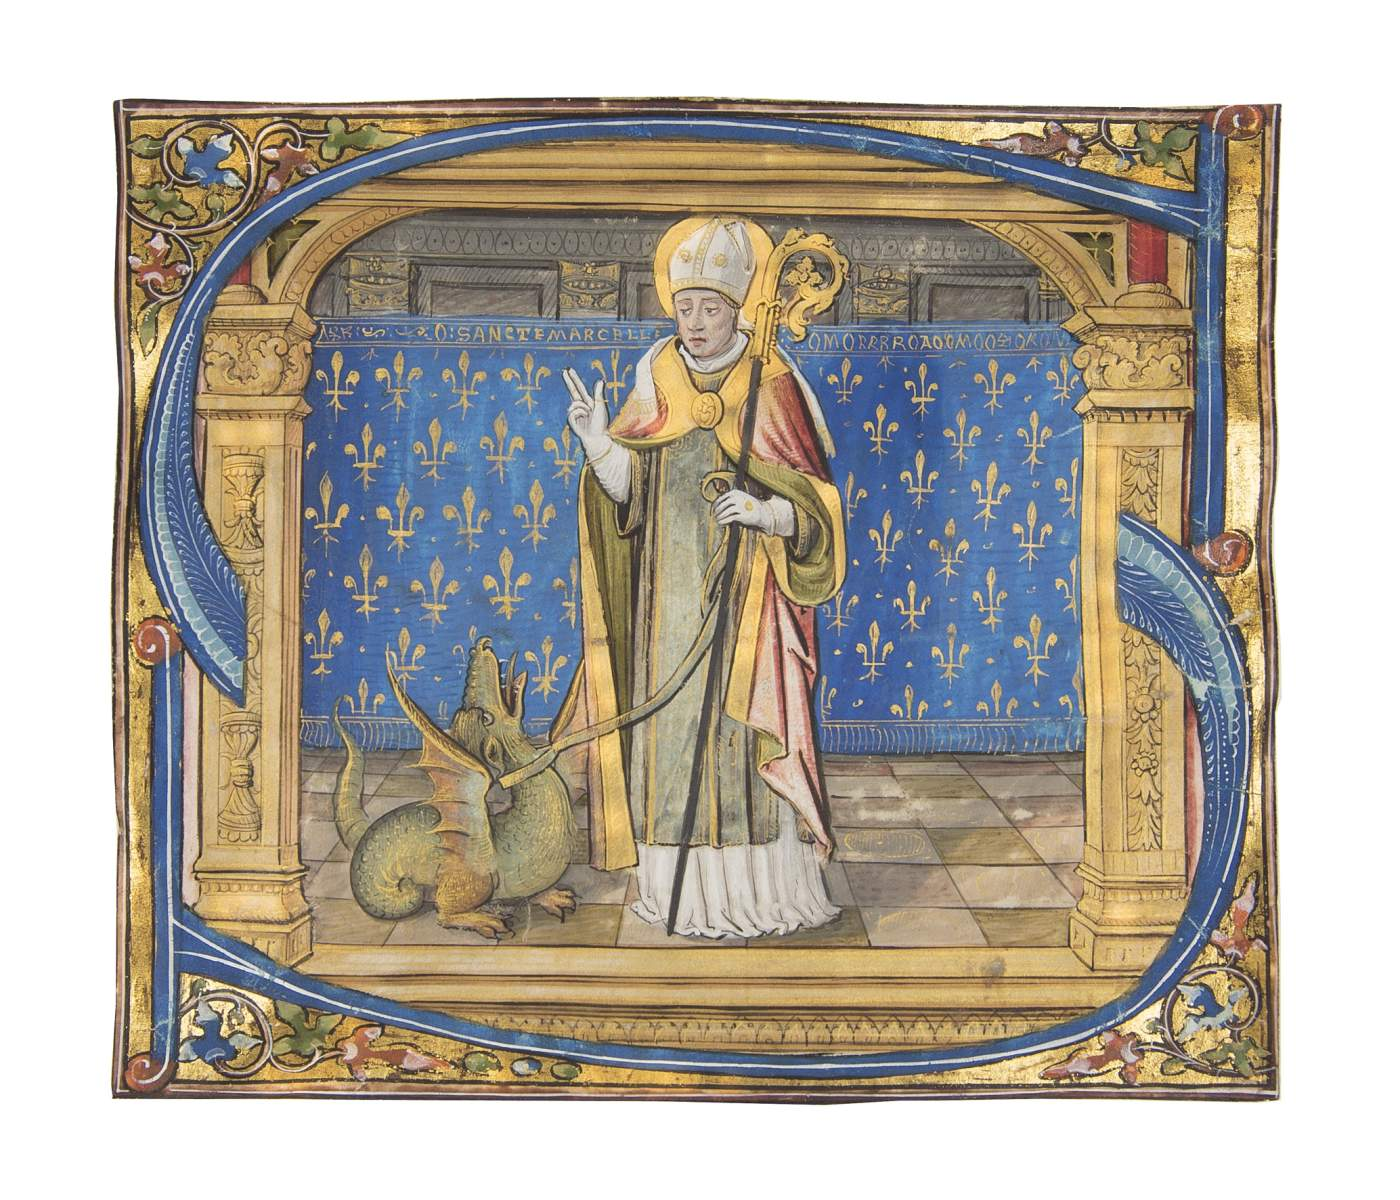 From the royal Gradual of King Louis XII – Saint Marcel and his Dragon